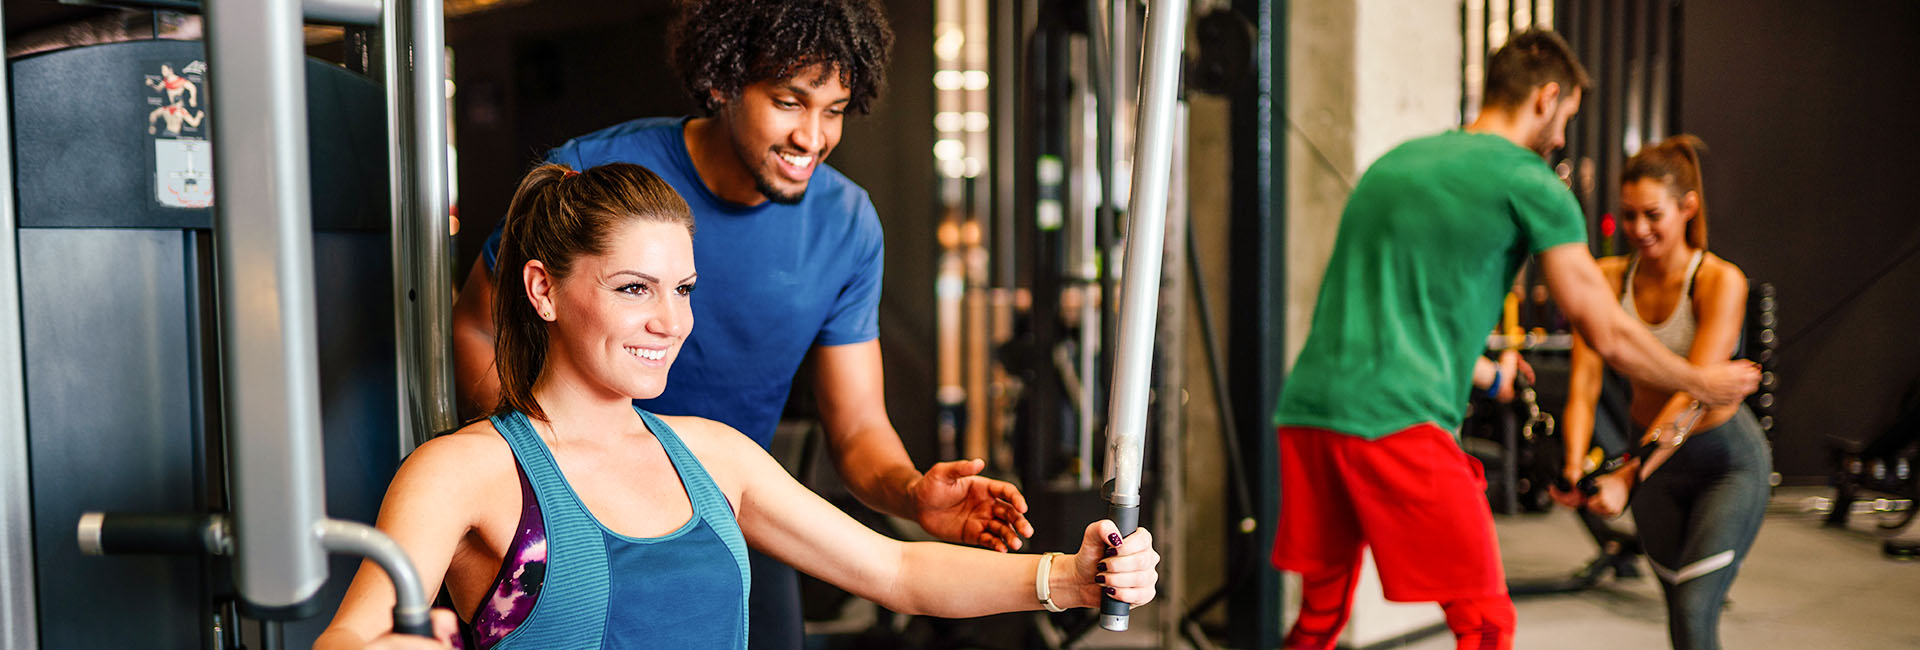 certified personal trainer working with a gym member